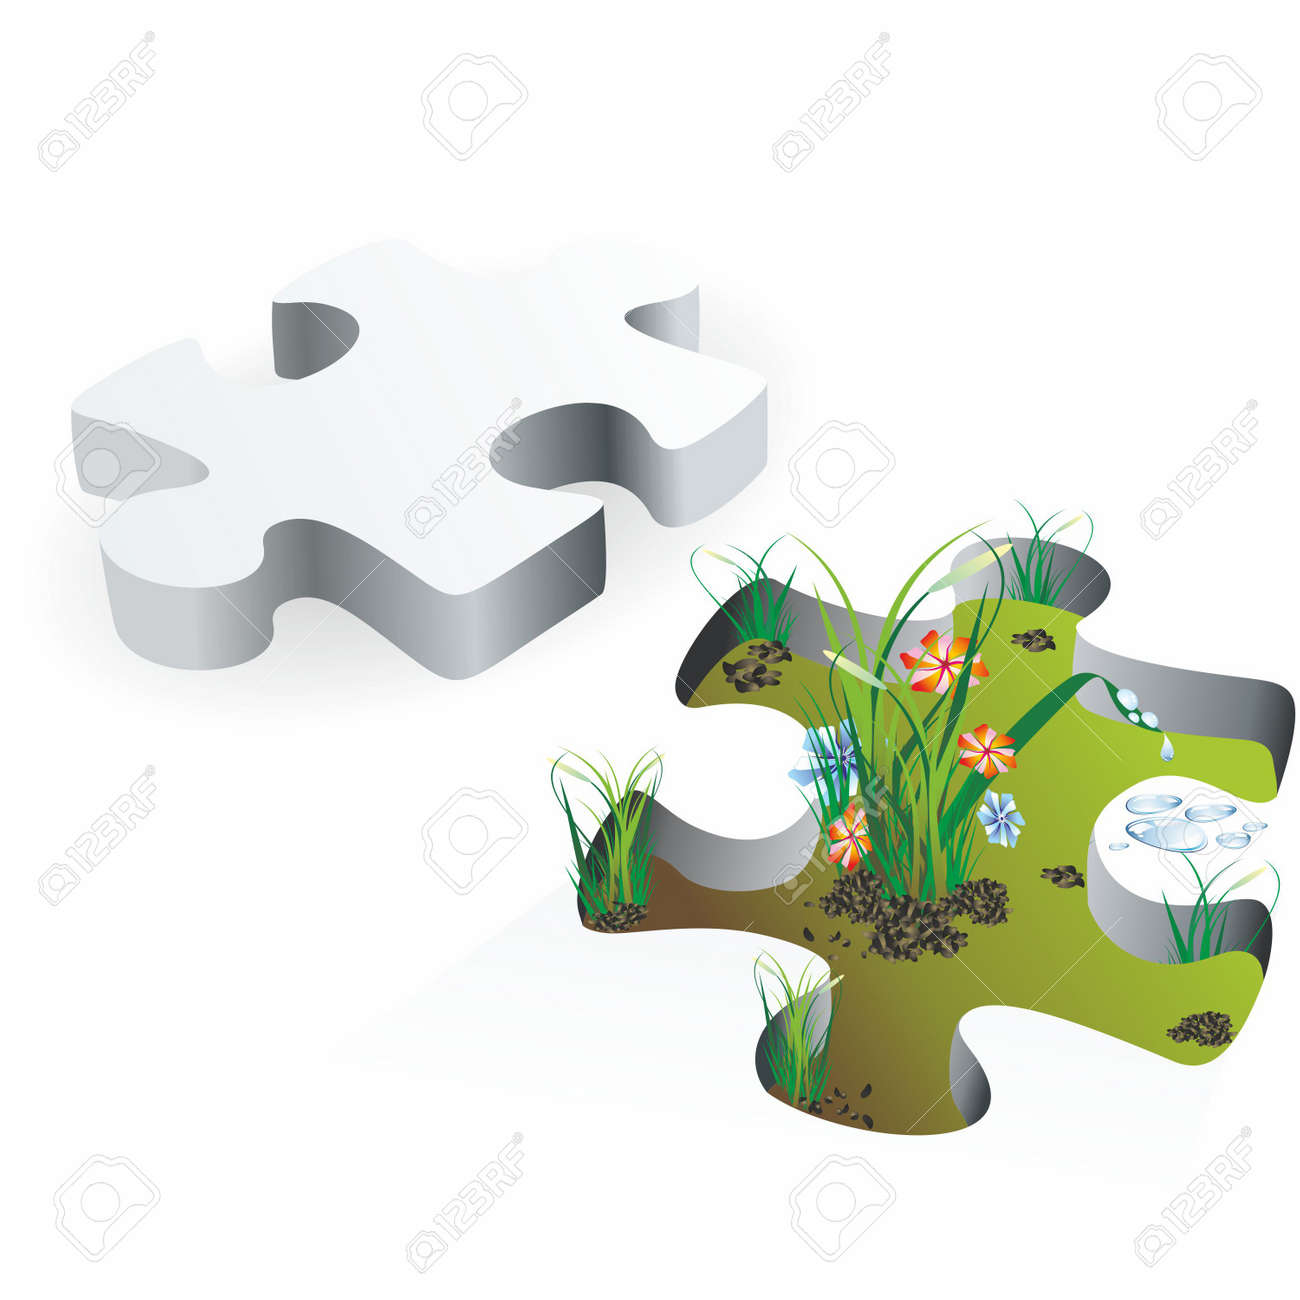 Puzzle and plant isolated on white background Stock Vector - 10330588